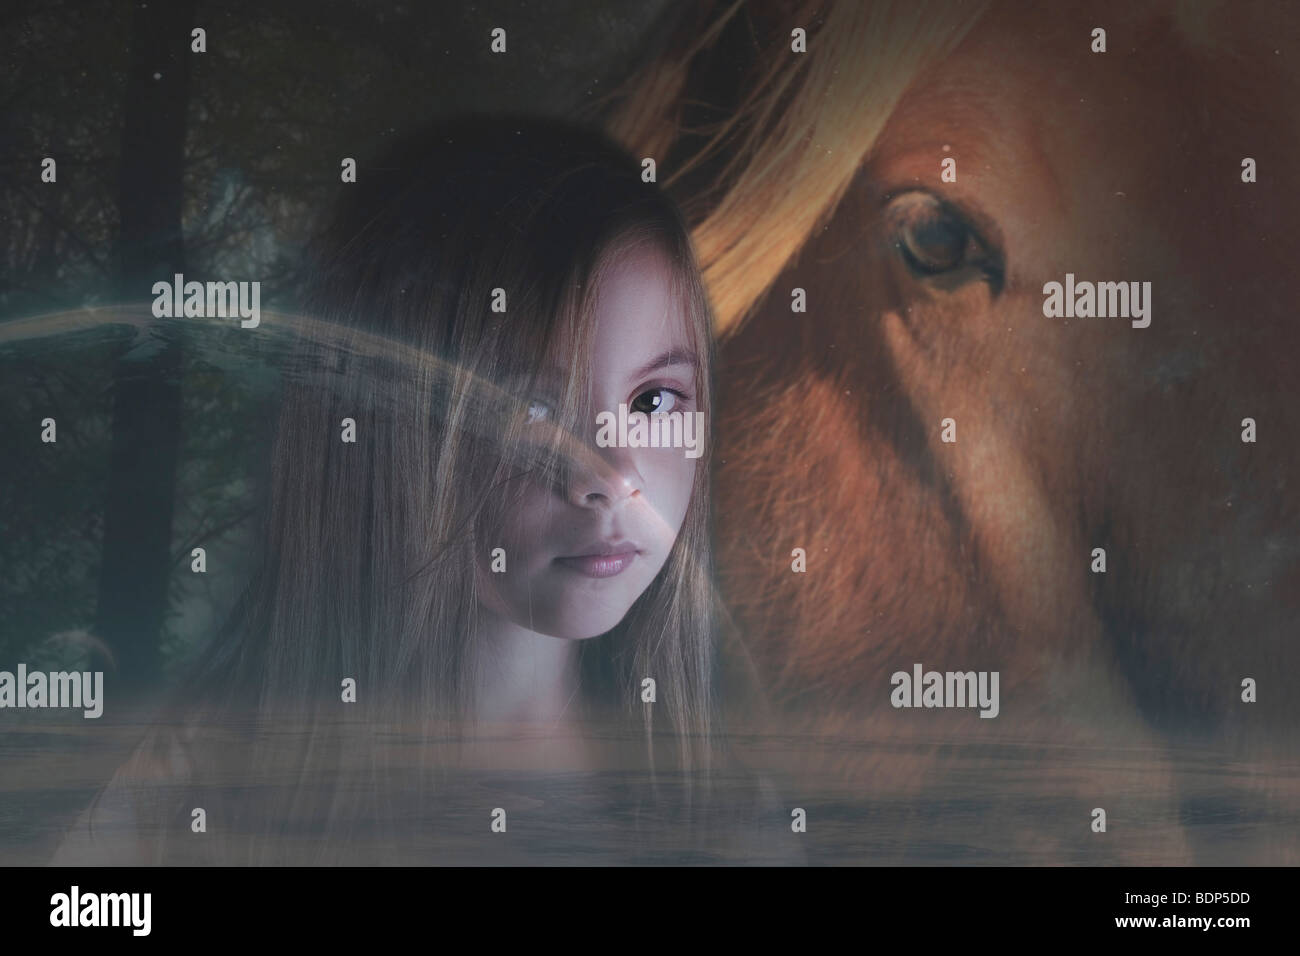 young child with a horse in a fantasy image - Stock Image